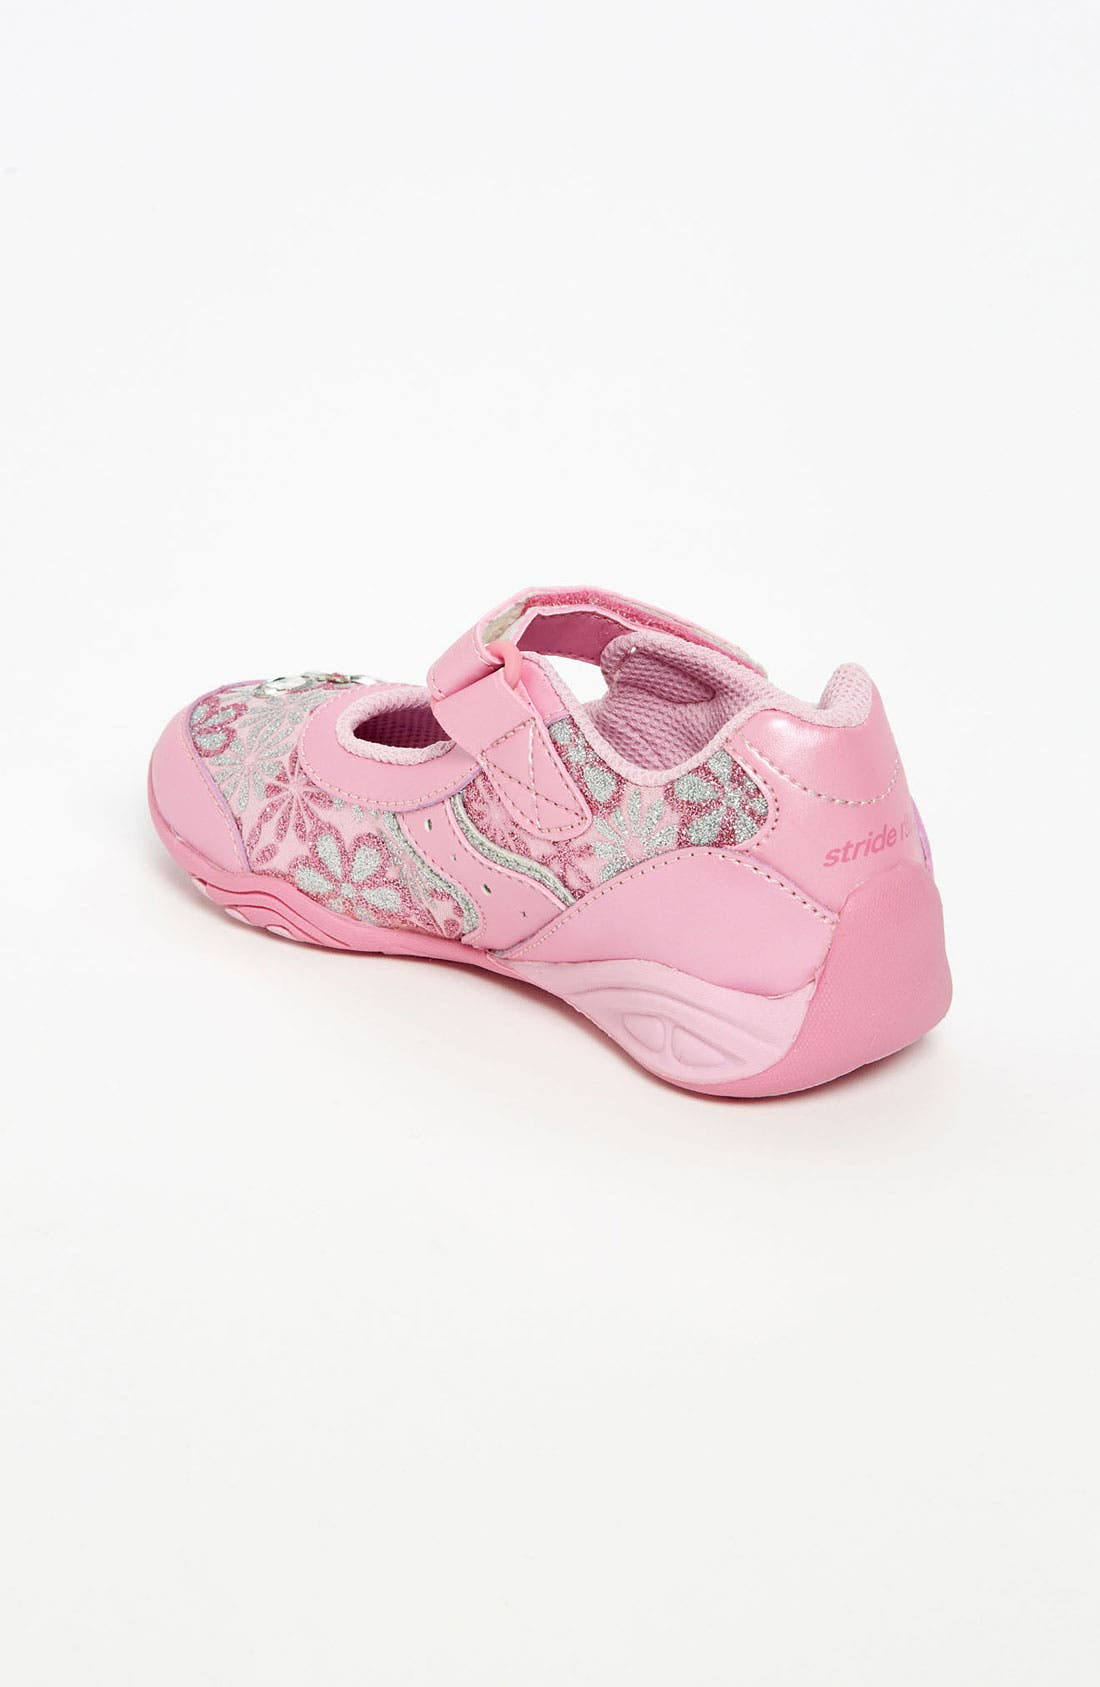 Alternate Image 2  - Stride Rite 'Rae' Sneaker (Walker, Toddler & Little Kid)